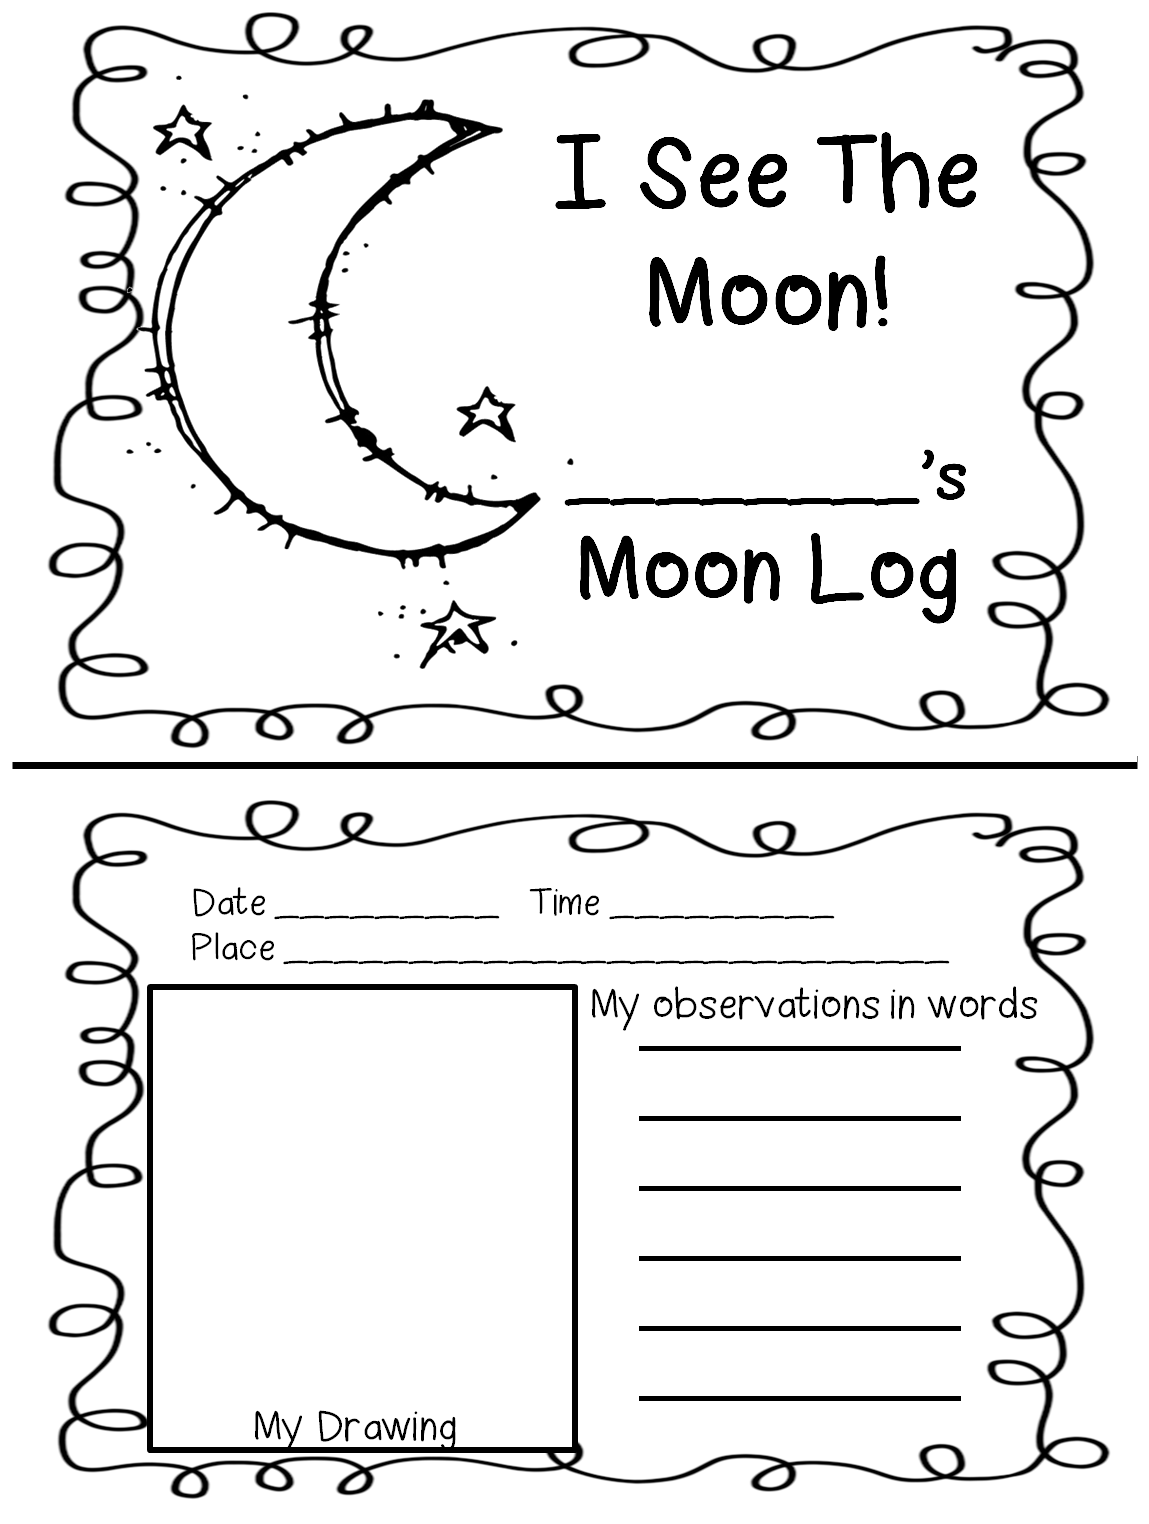 night+sky+with+splat+7 Objects In The Sky Activities For First Grade on